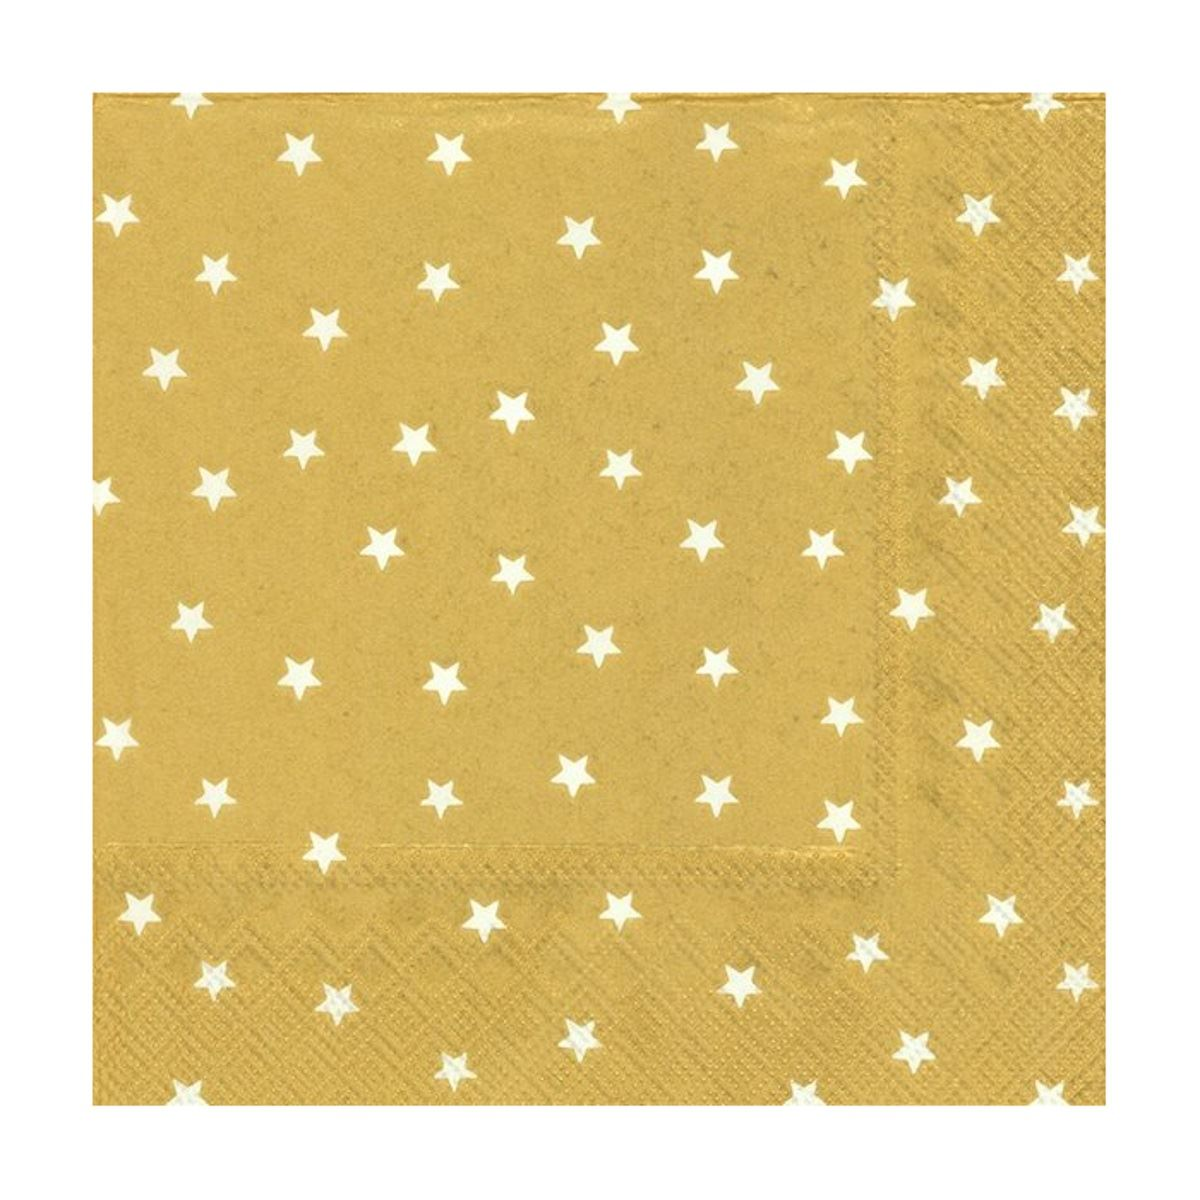 Paper Christmas Napkins Mice Garland Stars Disposable Cocktail Party Serviettes